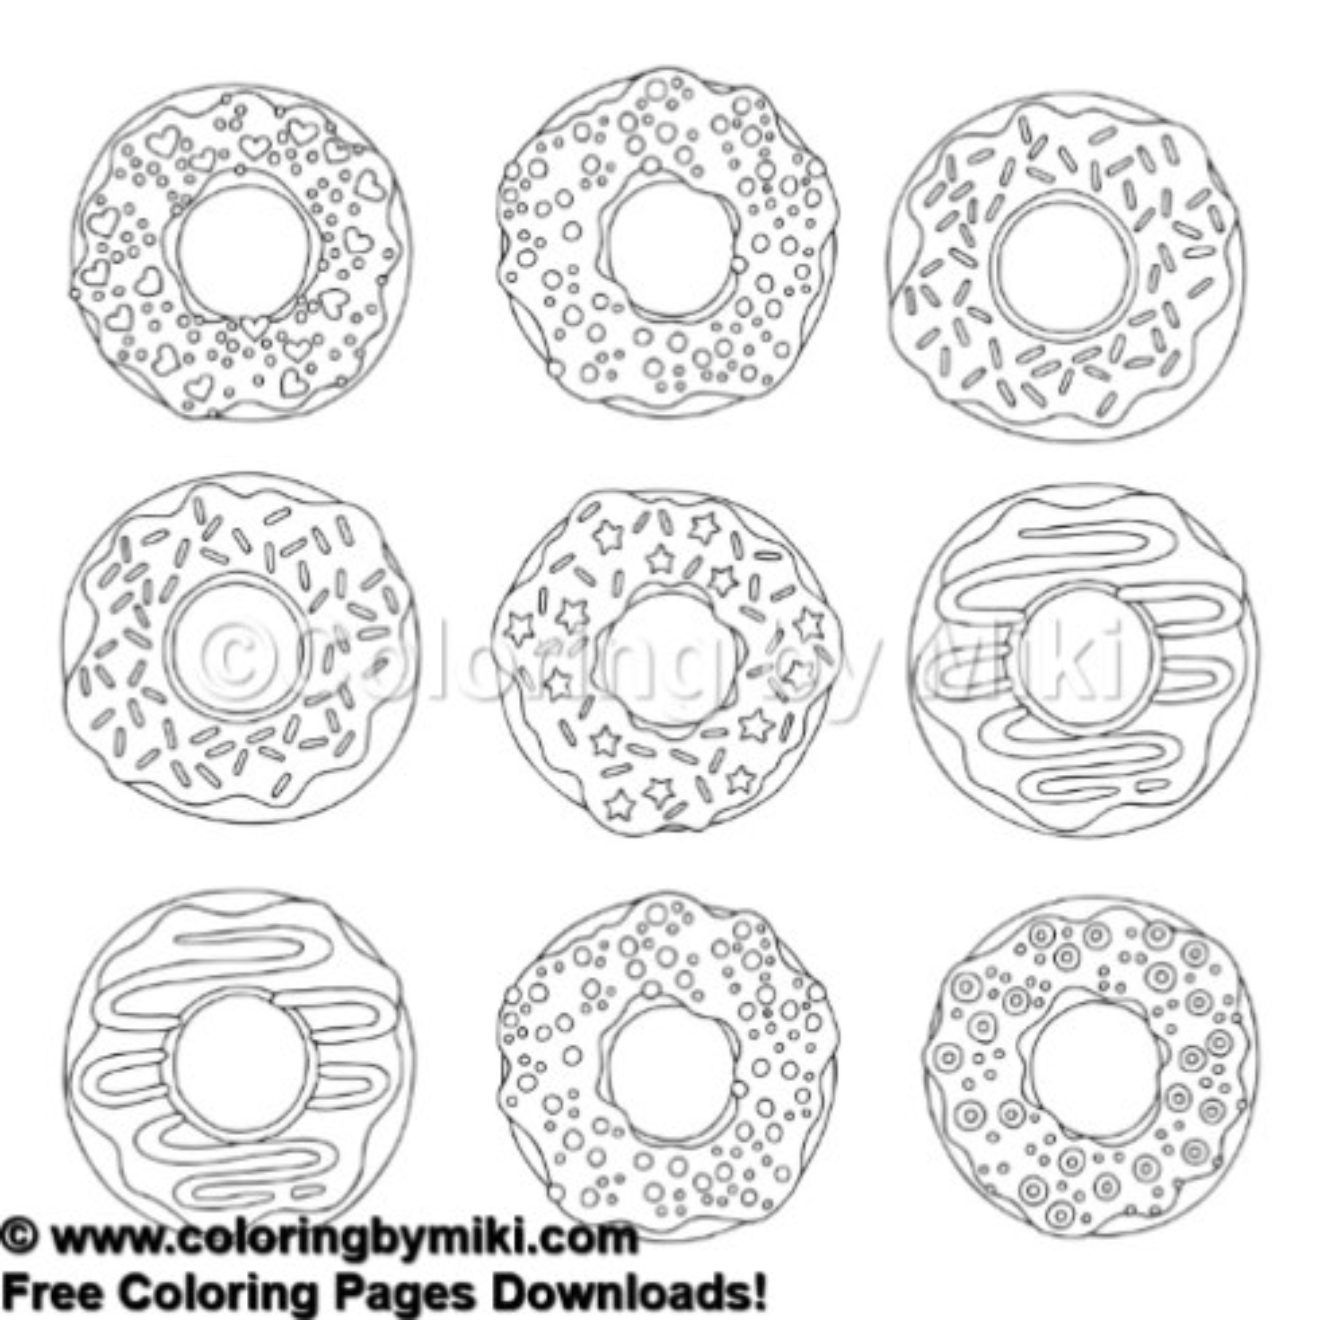 Donuts Coloring Page 476 freeprintable coloring coloringforadults pattern 模様